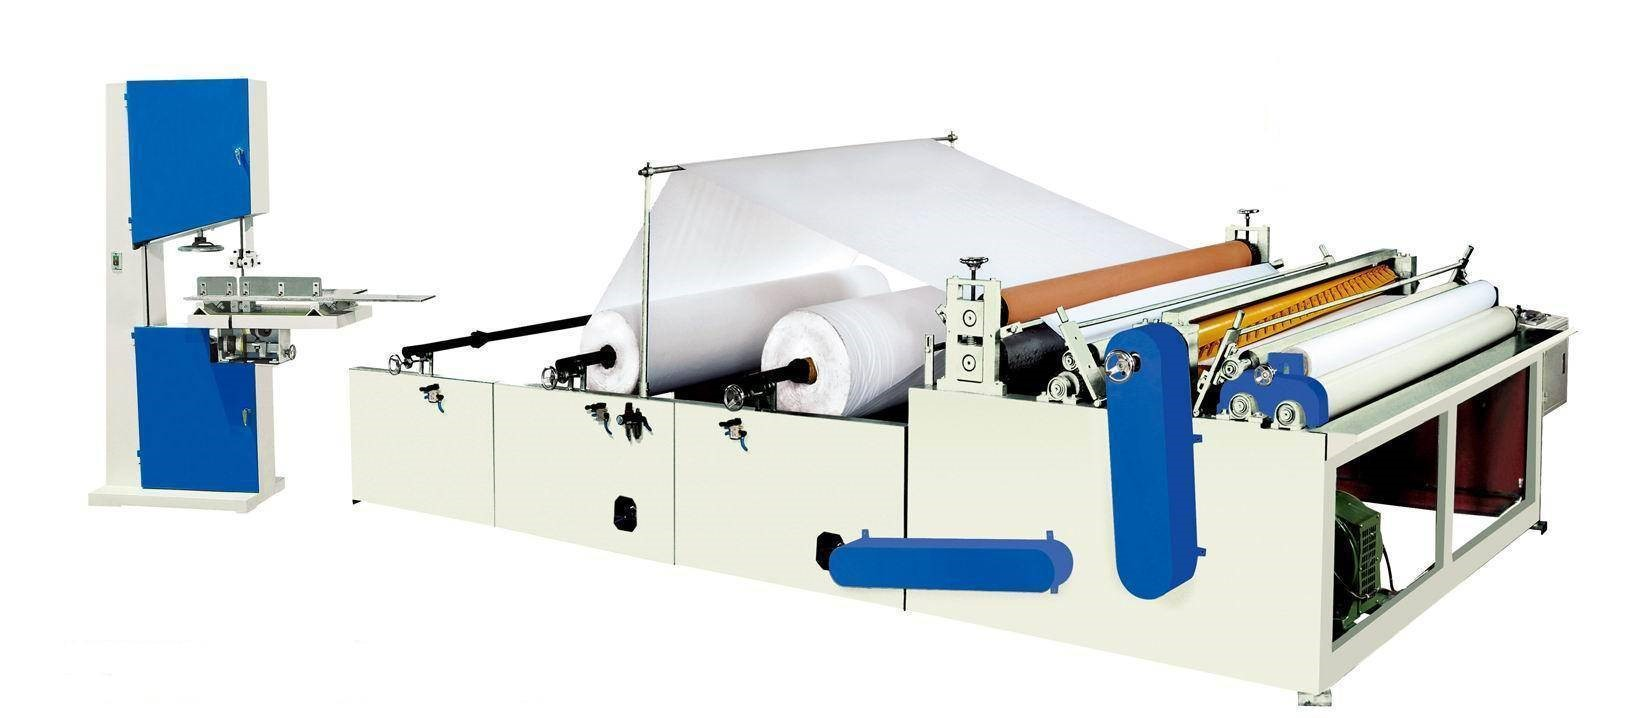 Roll Converting Equipment and Its Benefits